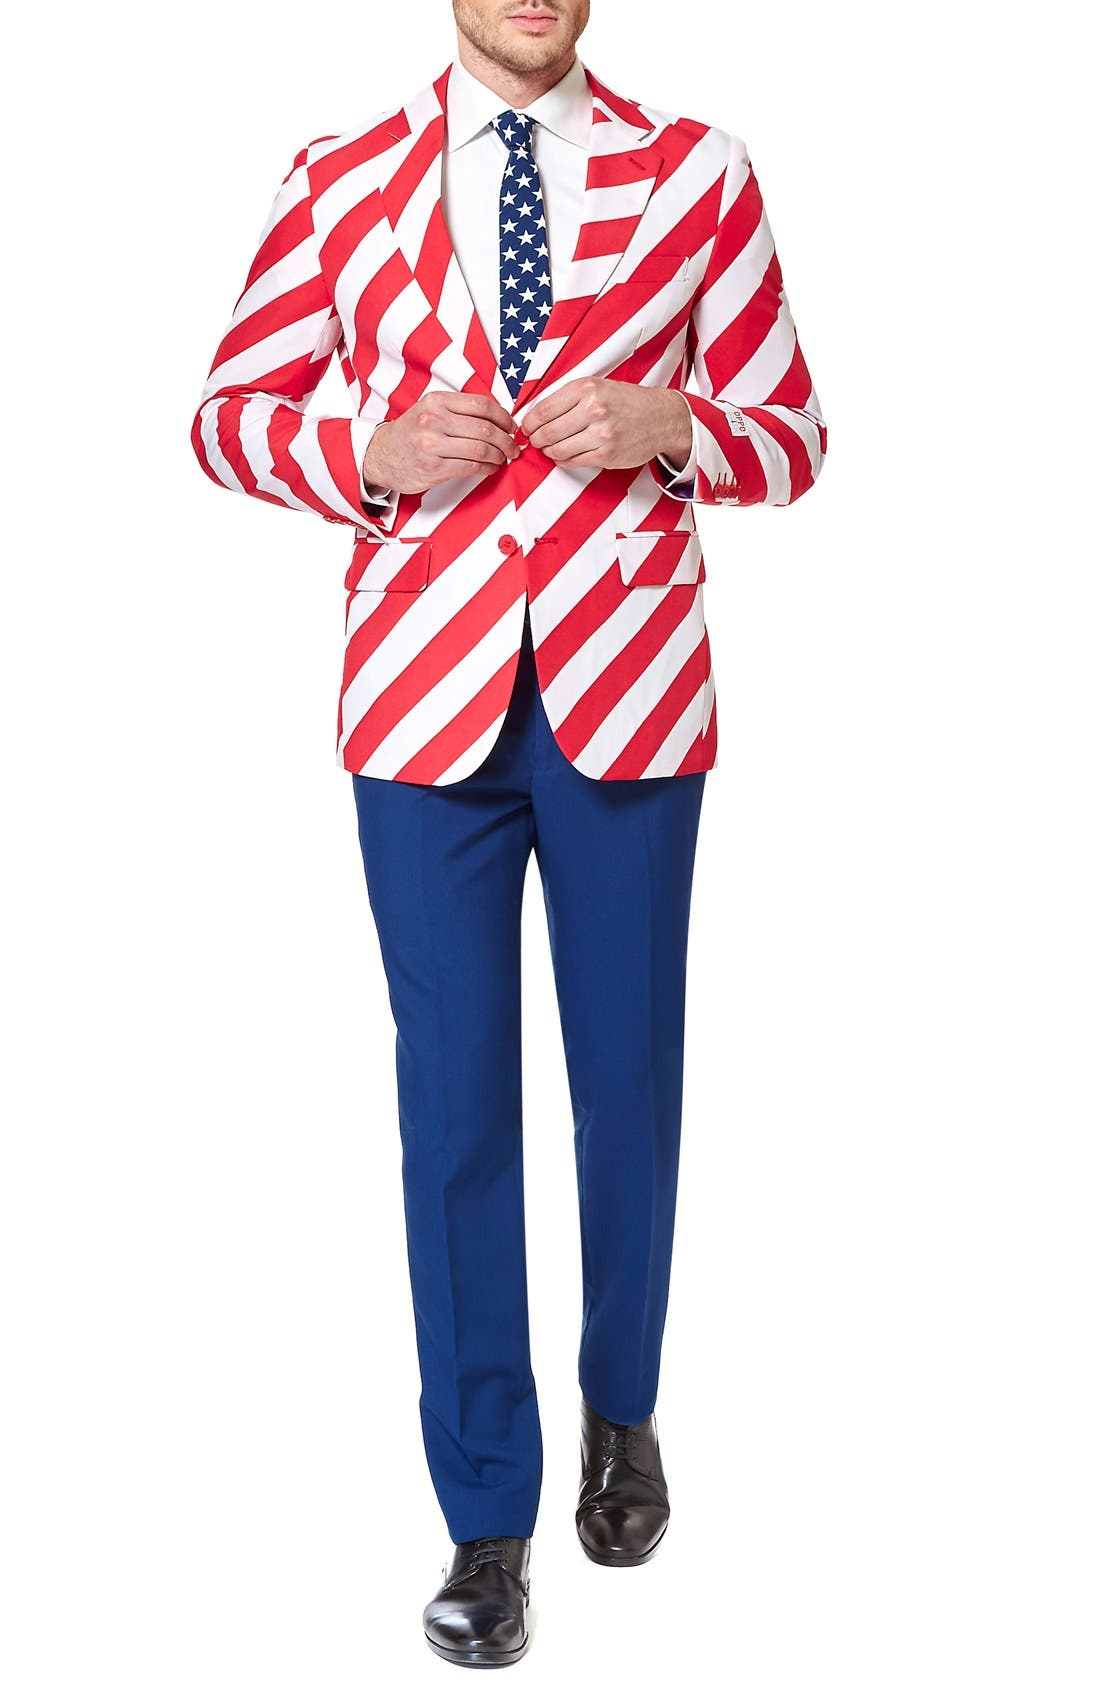 'United Stripes' Trim Fit Suit with Tie,                             Alternate thumbnail 4, color,                             Red/ Blue/ White